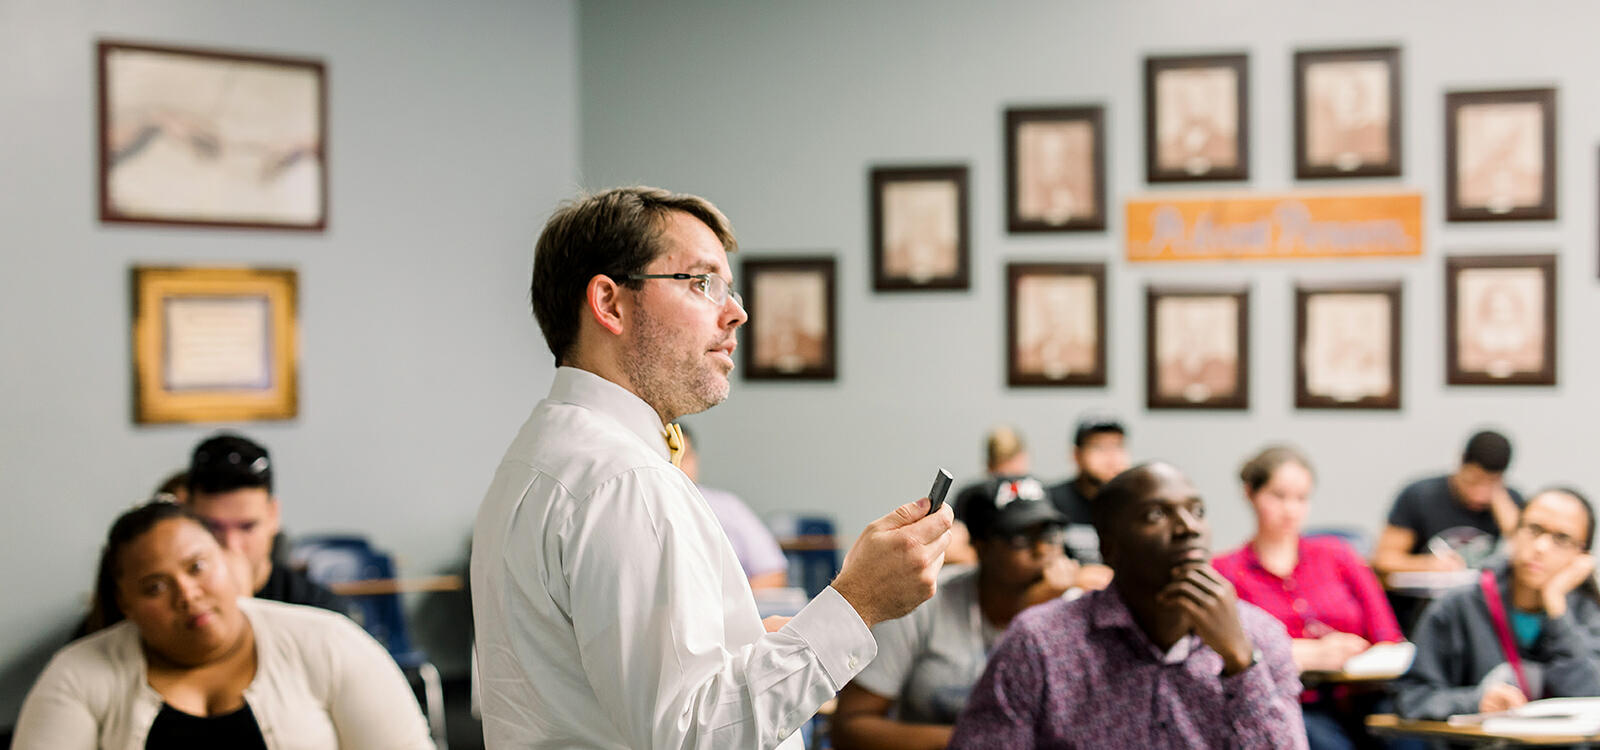 Dr. Michael Campbell, dressed in a white button up and yellow bow tie, stands in front of his class with a clicker in his hand